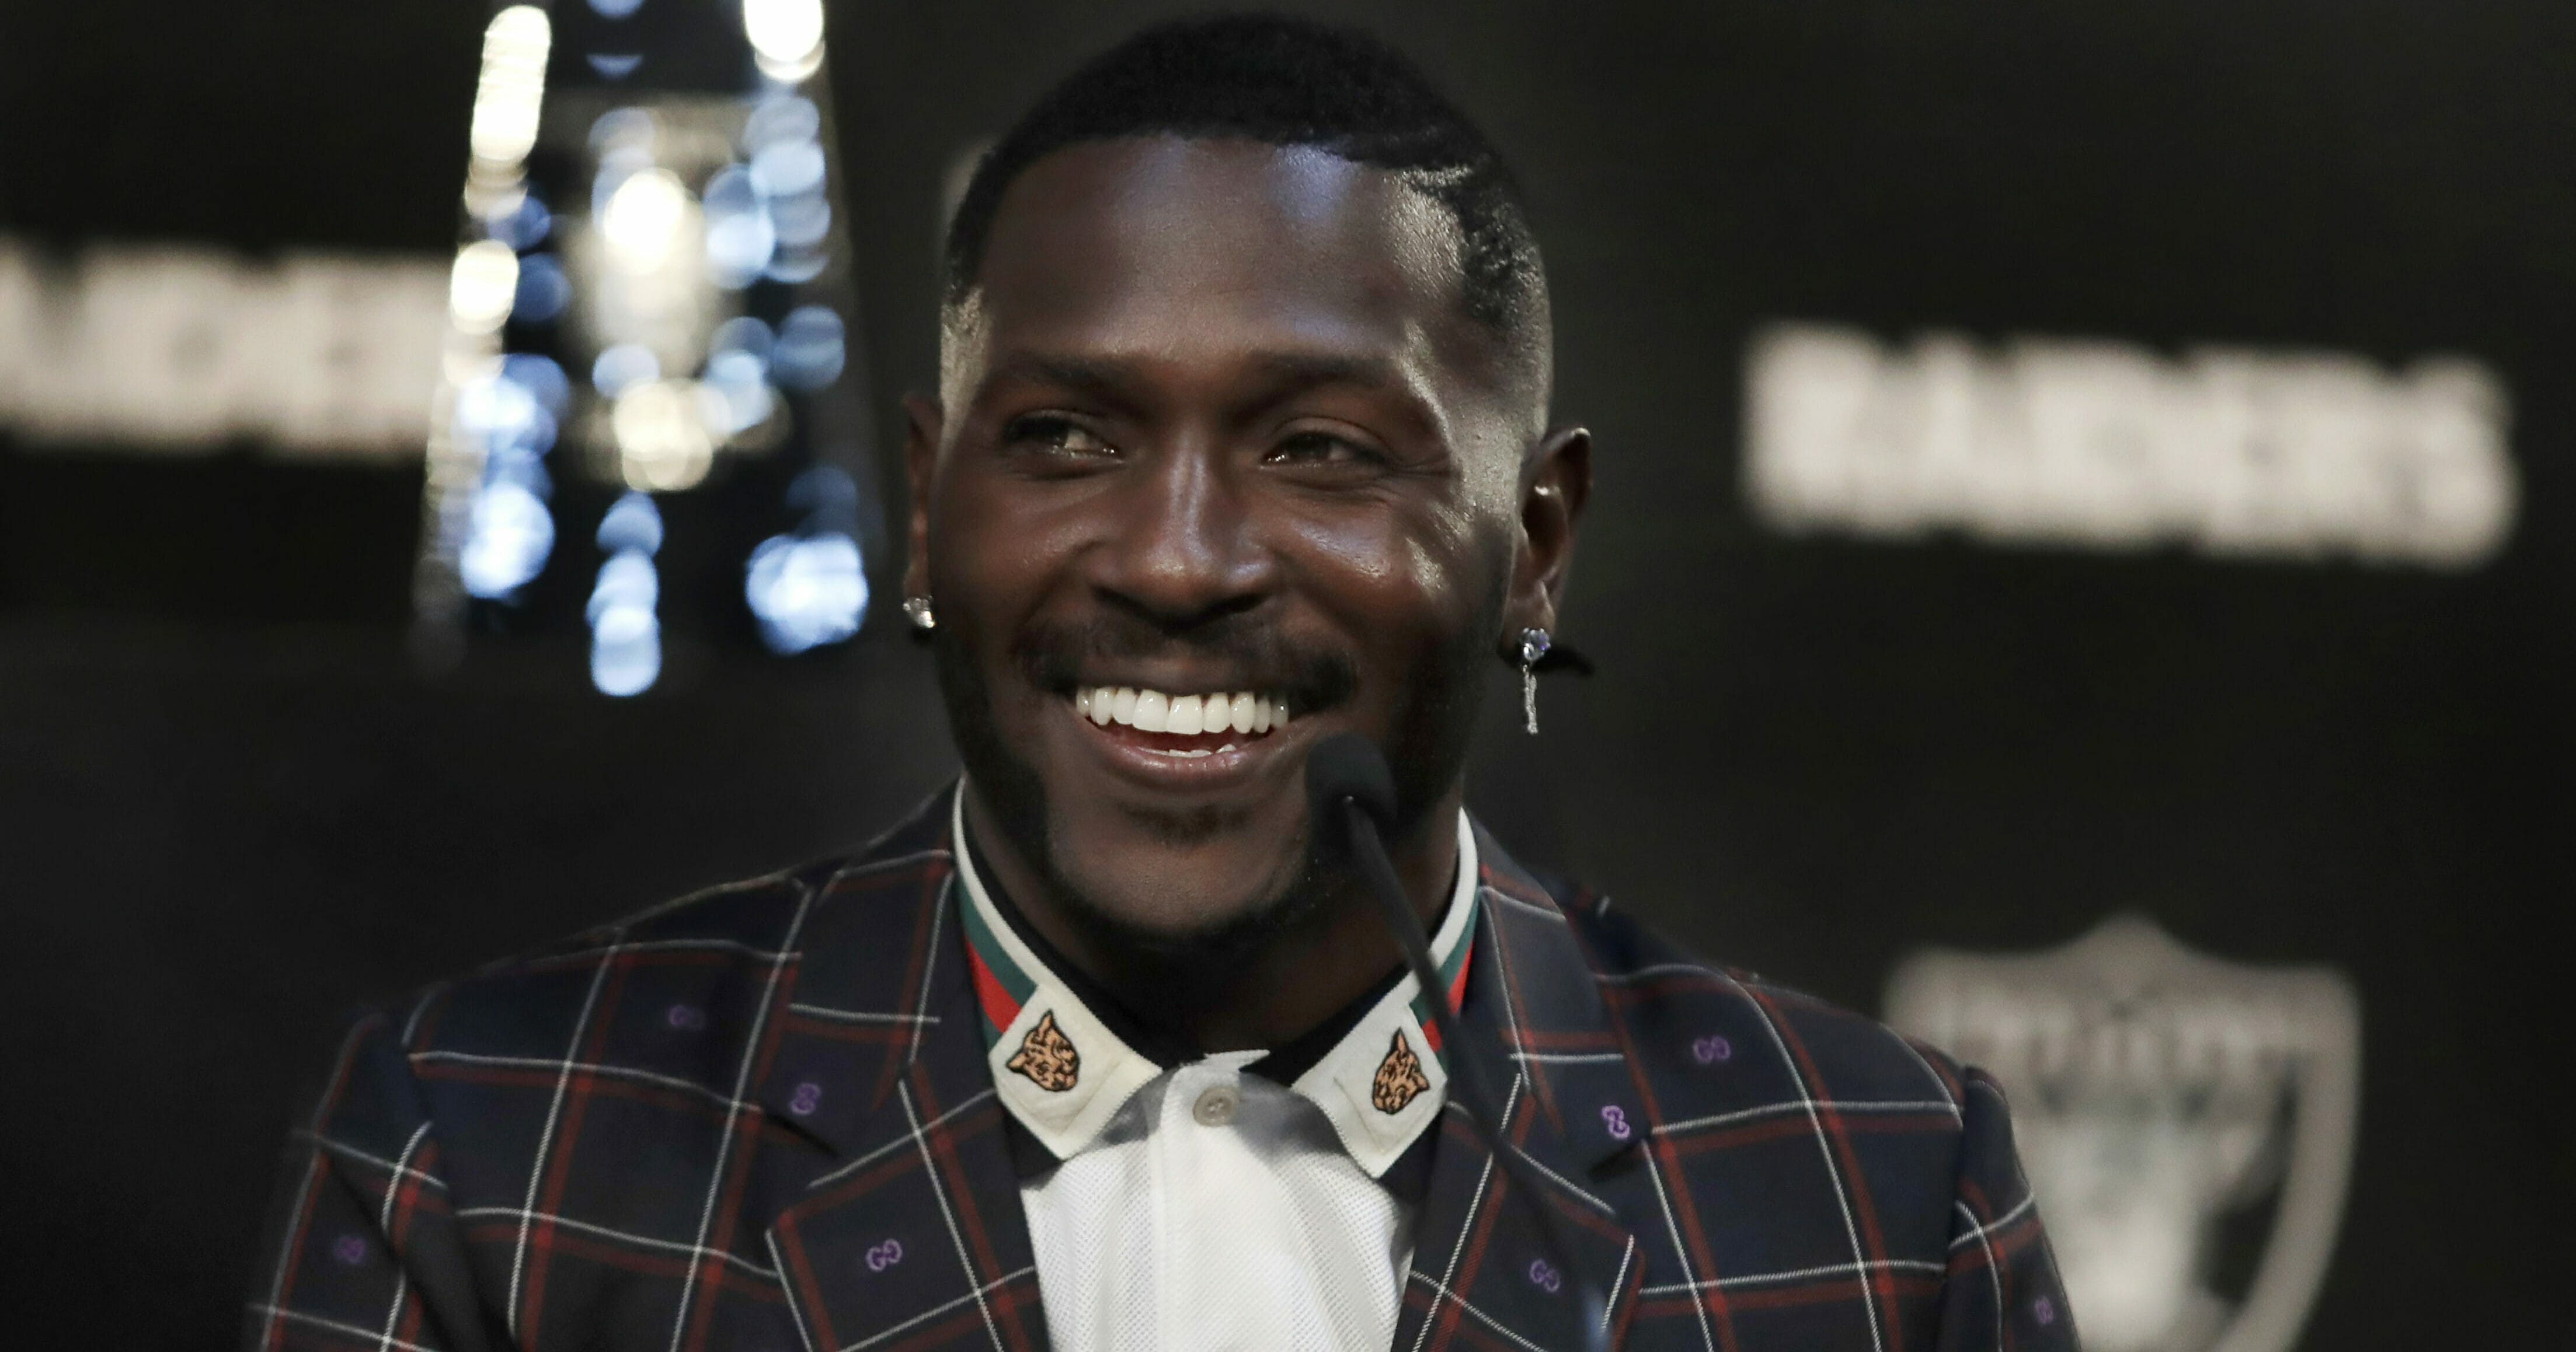 Oakland Raiders wide receiver Antonio Brown smiles during a news conference March 13, 2019, in Alameda, California.